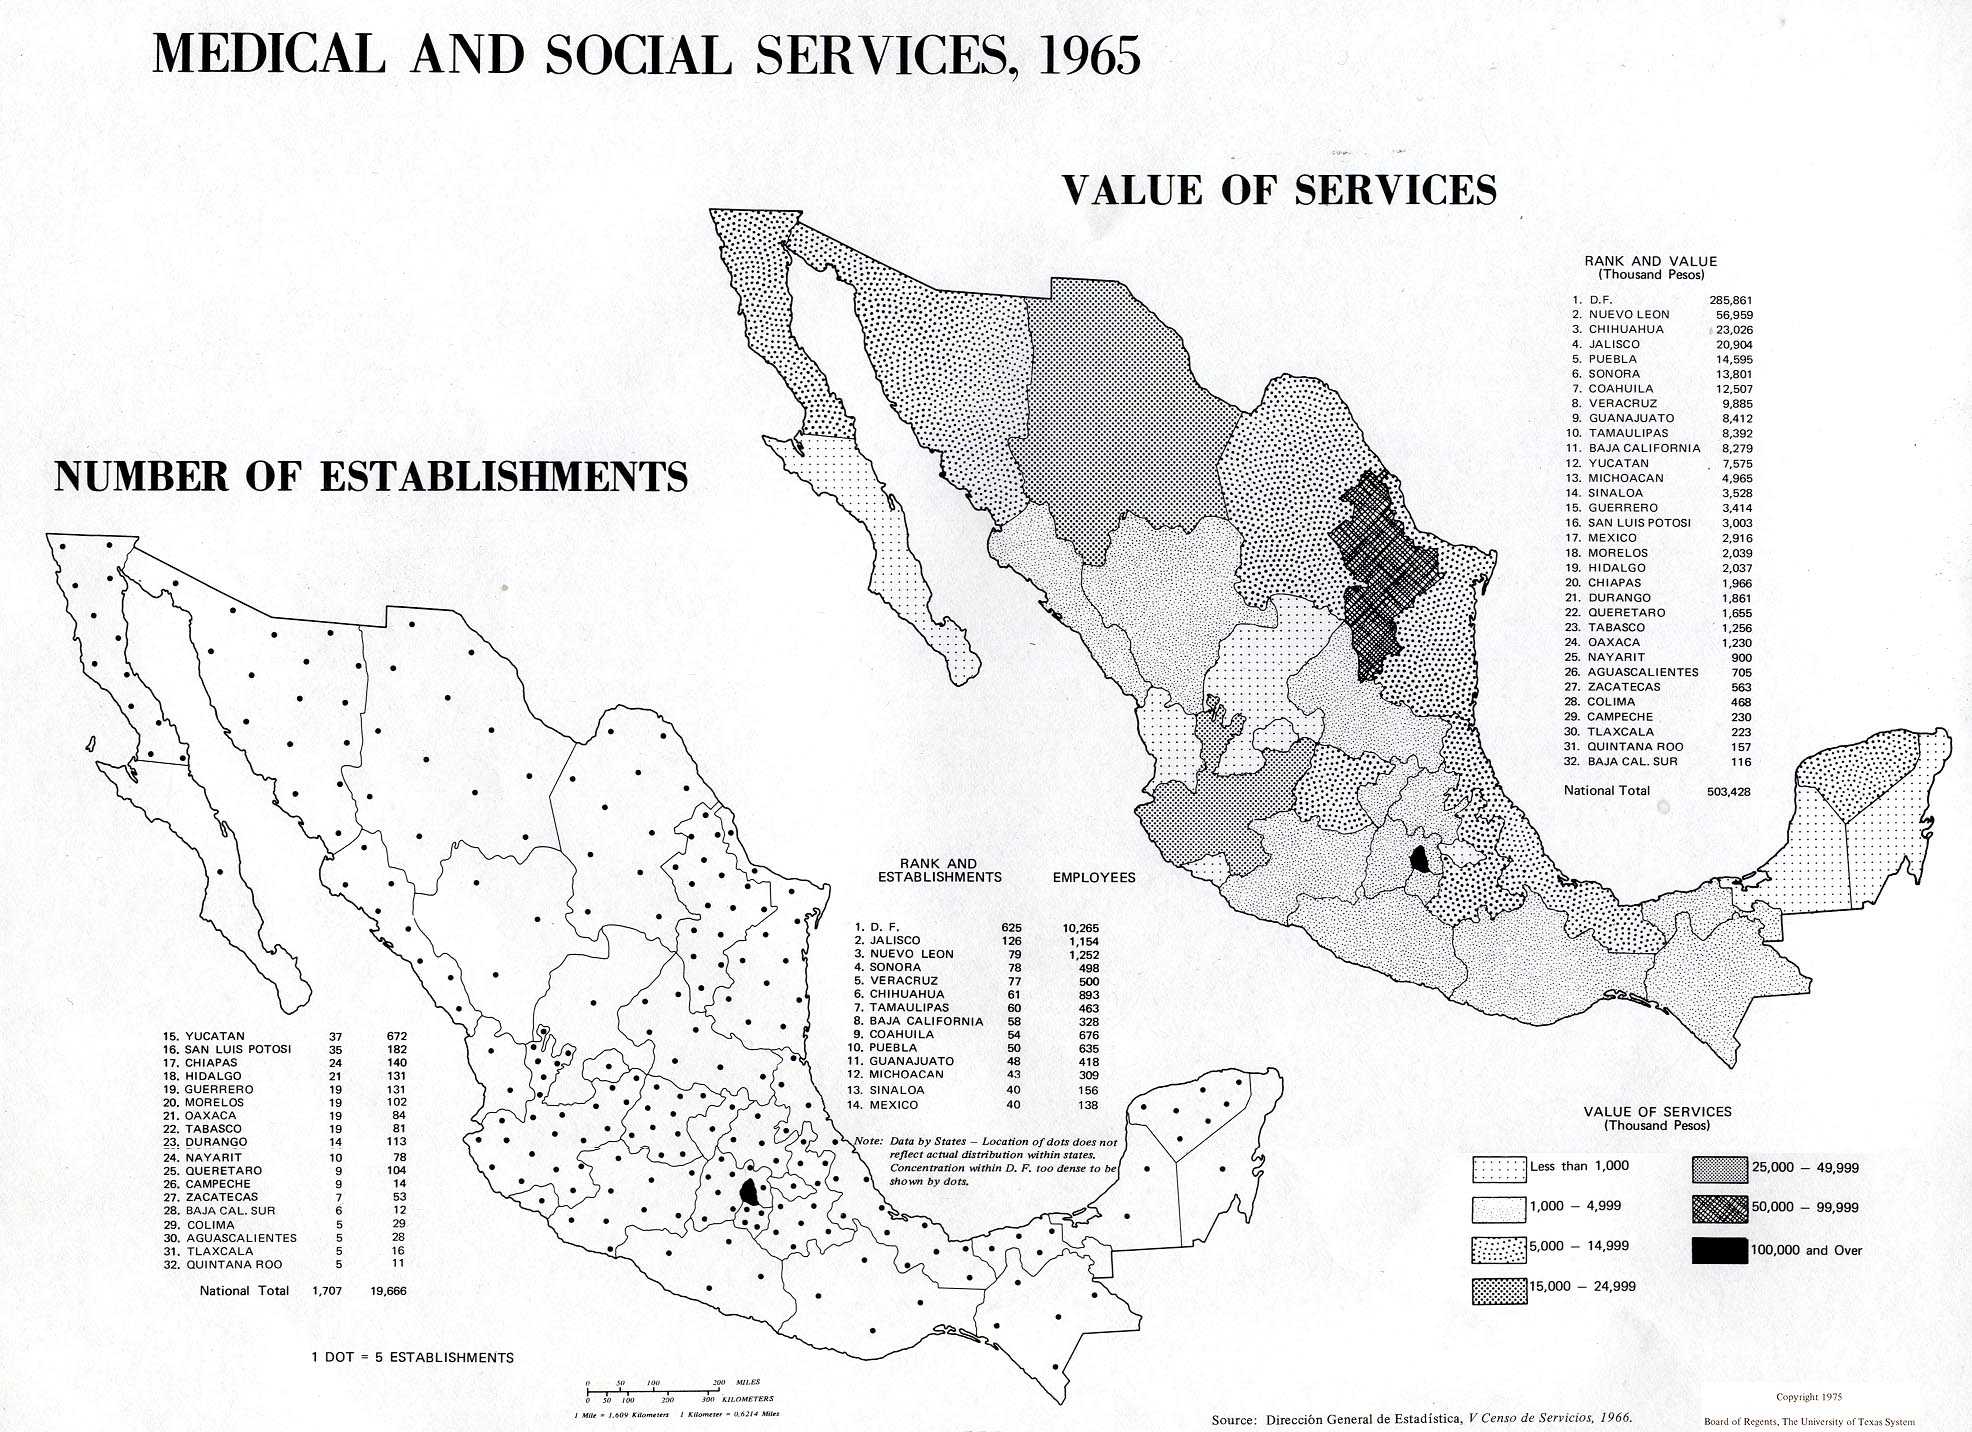 Medical and Social Services in Mexico 1965